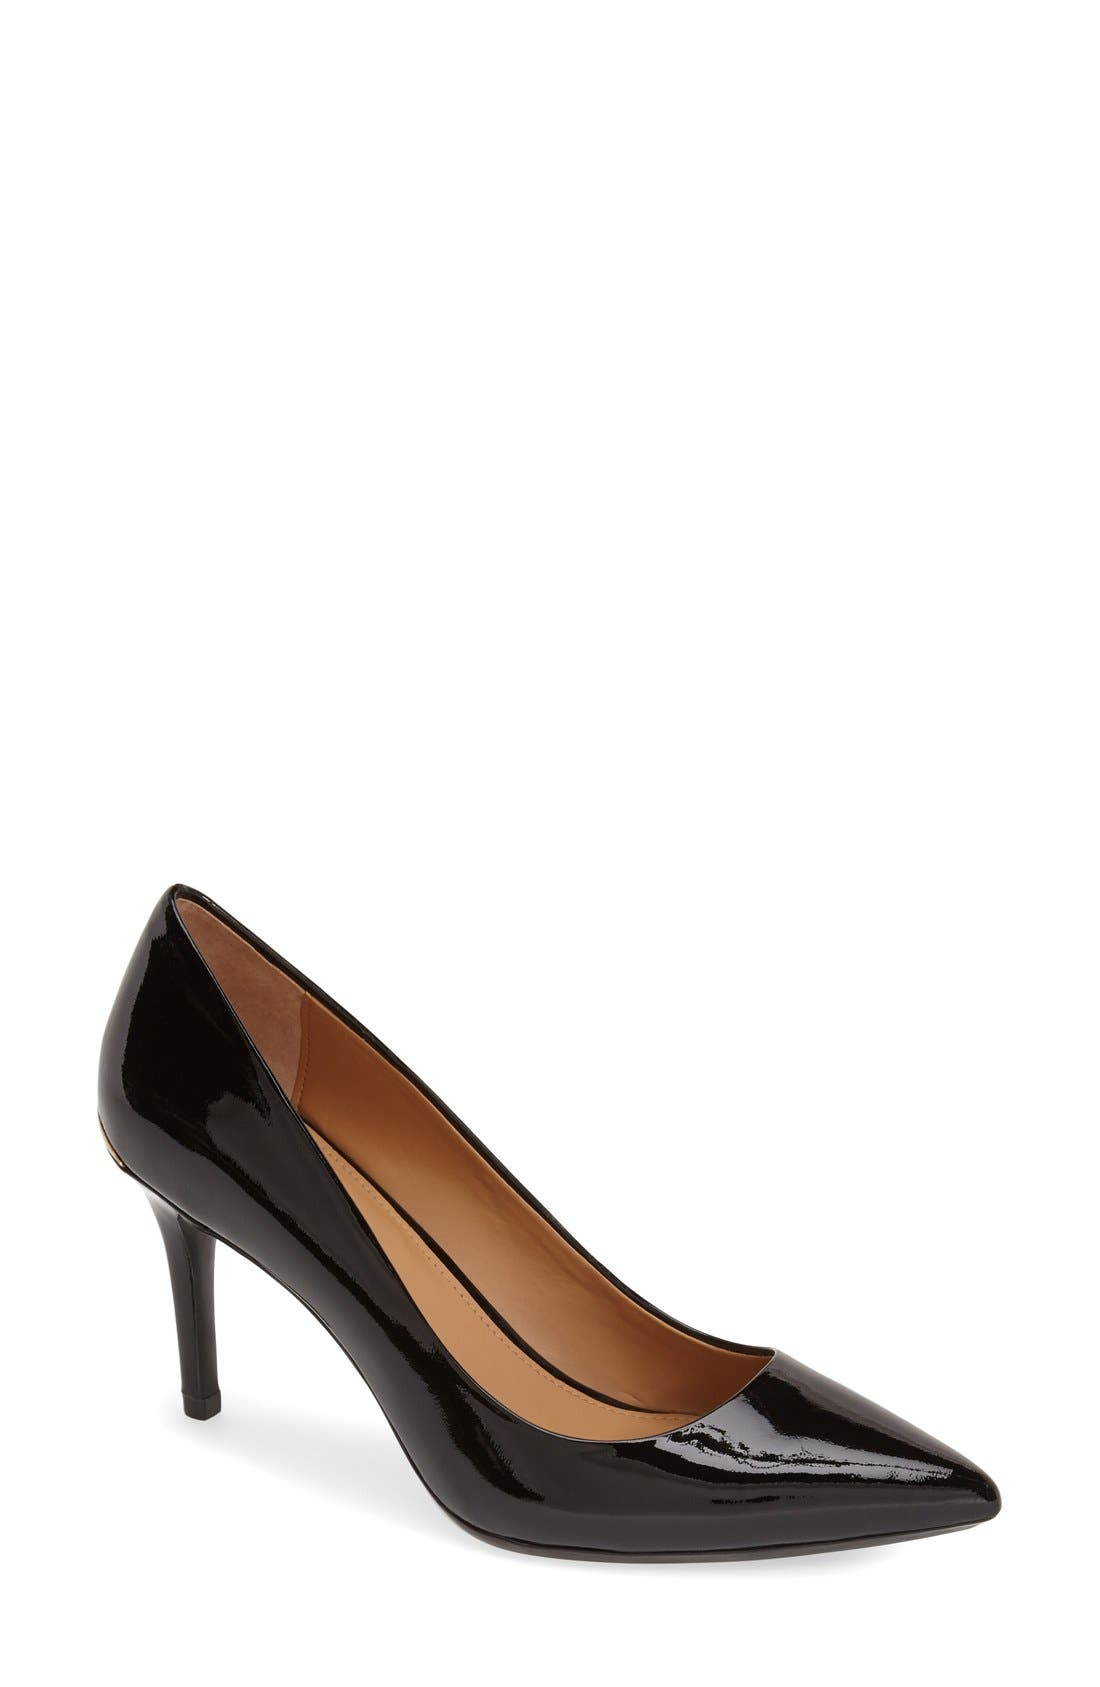 CALVIN KLEIN 'Gayle' Pointy Toe Pump, Main, color, BLACK PATENT